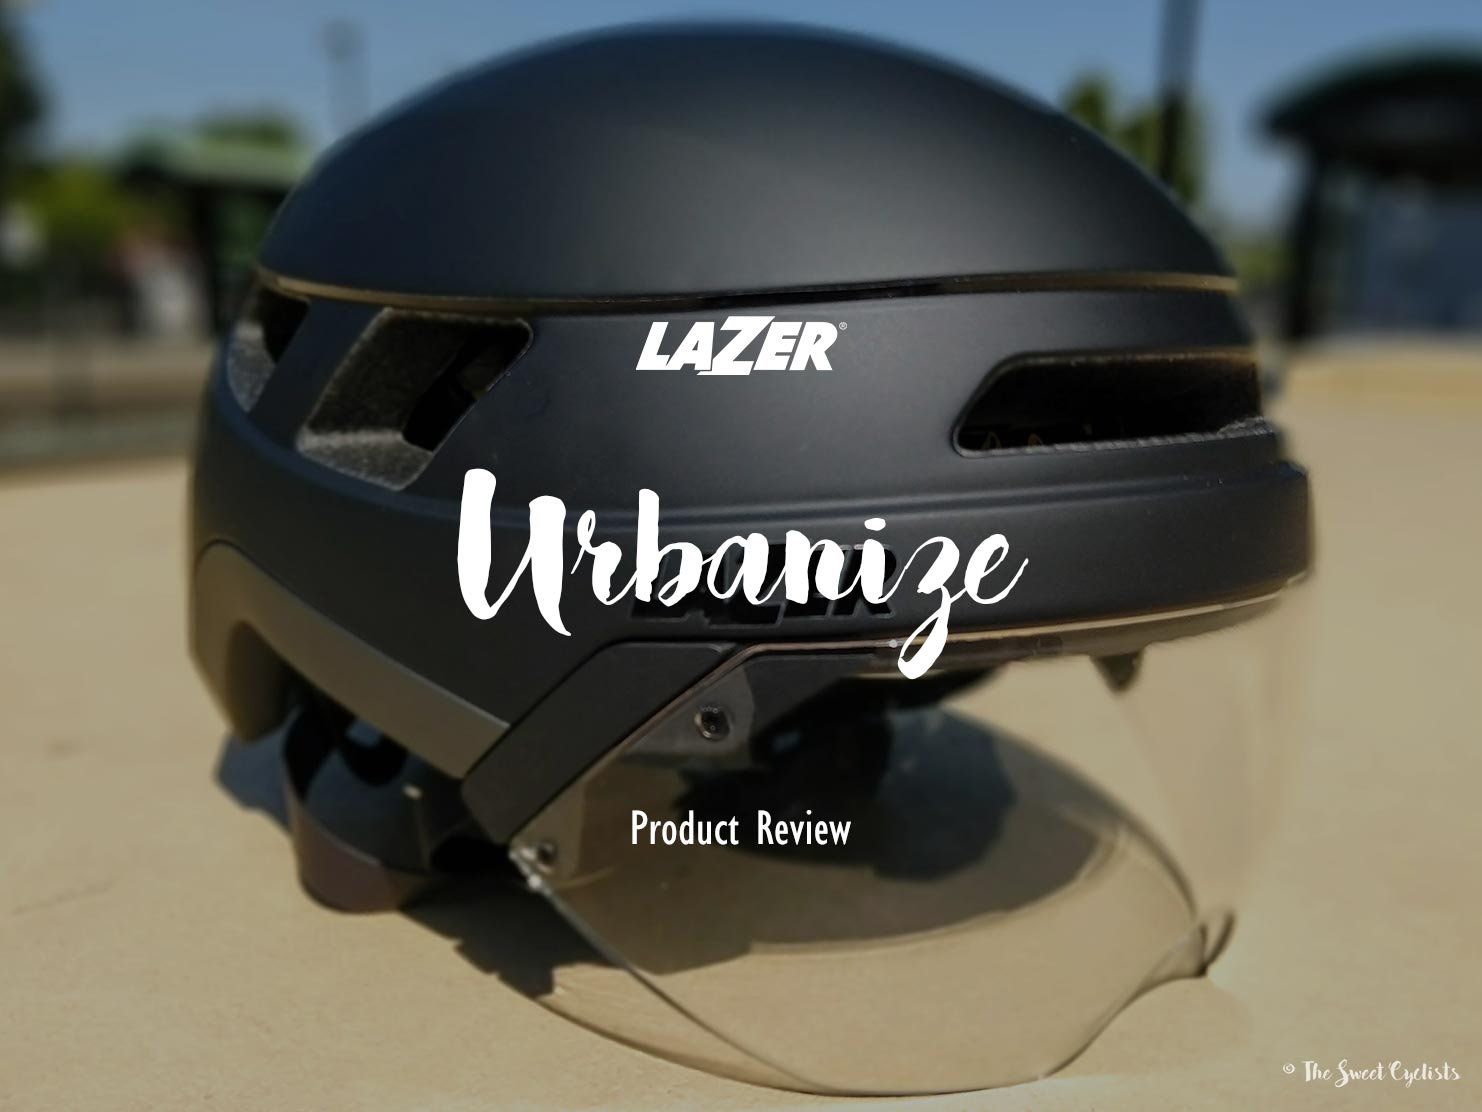 Ride like the wind with the Lazer Urbanize